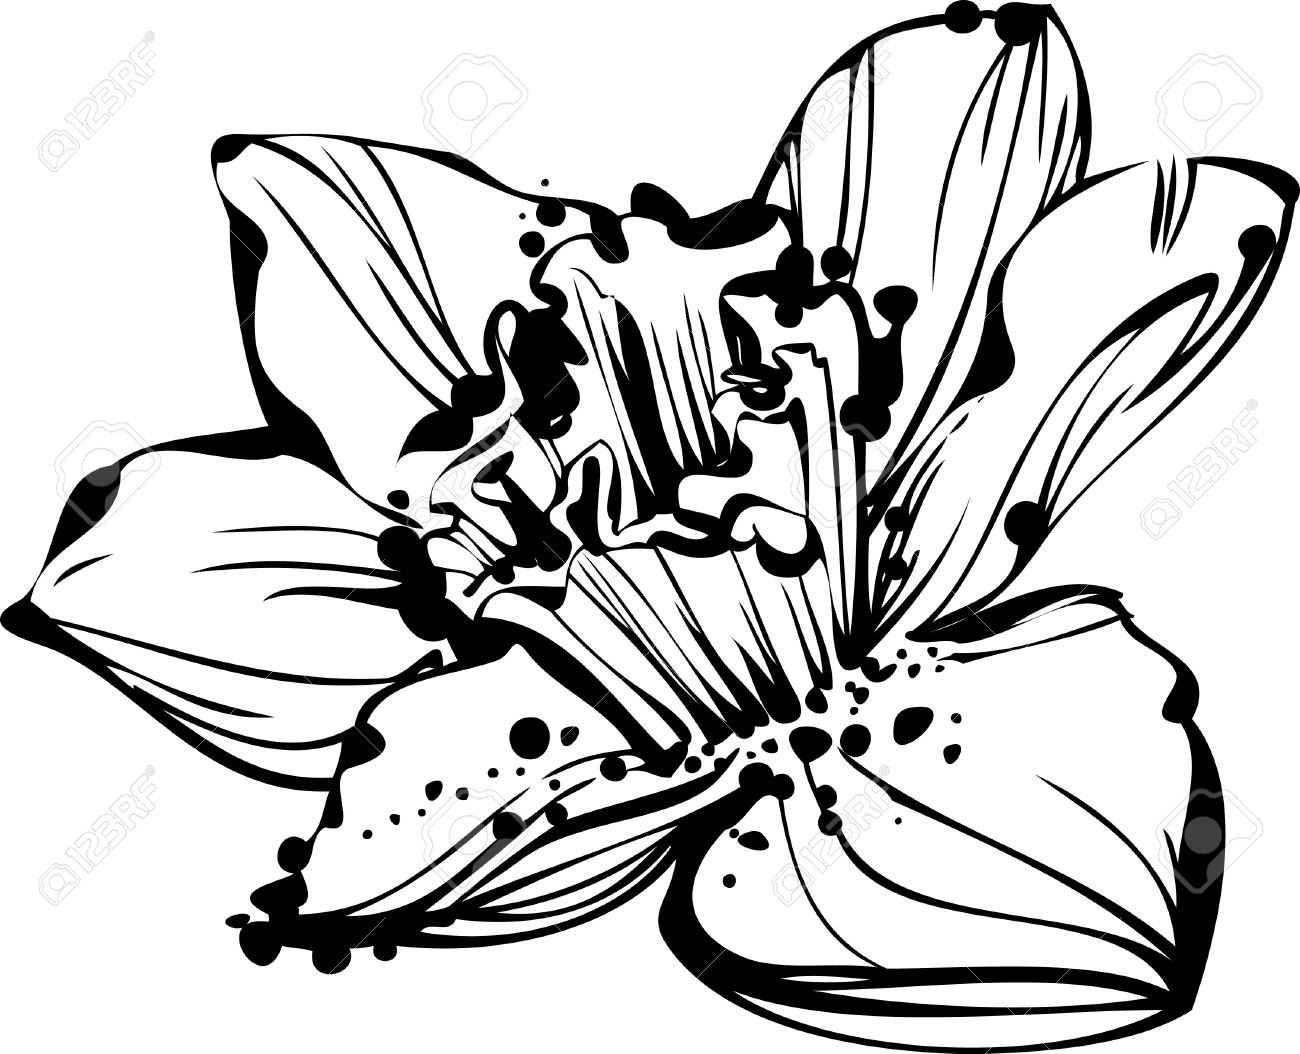 black and white picture sketch bud Narcissus Stock Vector - 10345111